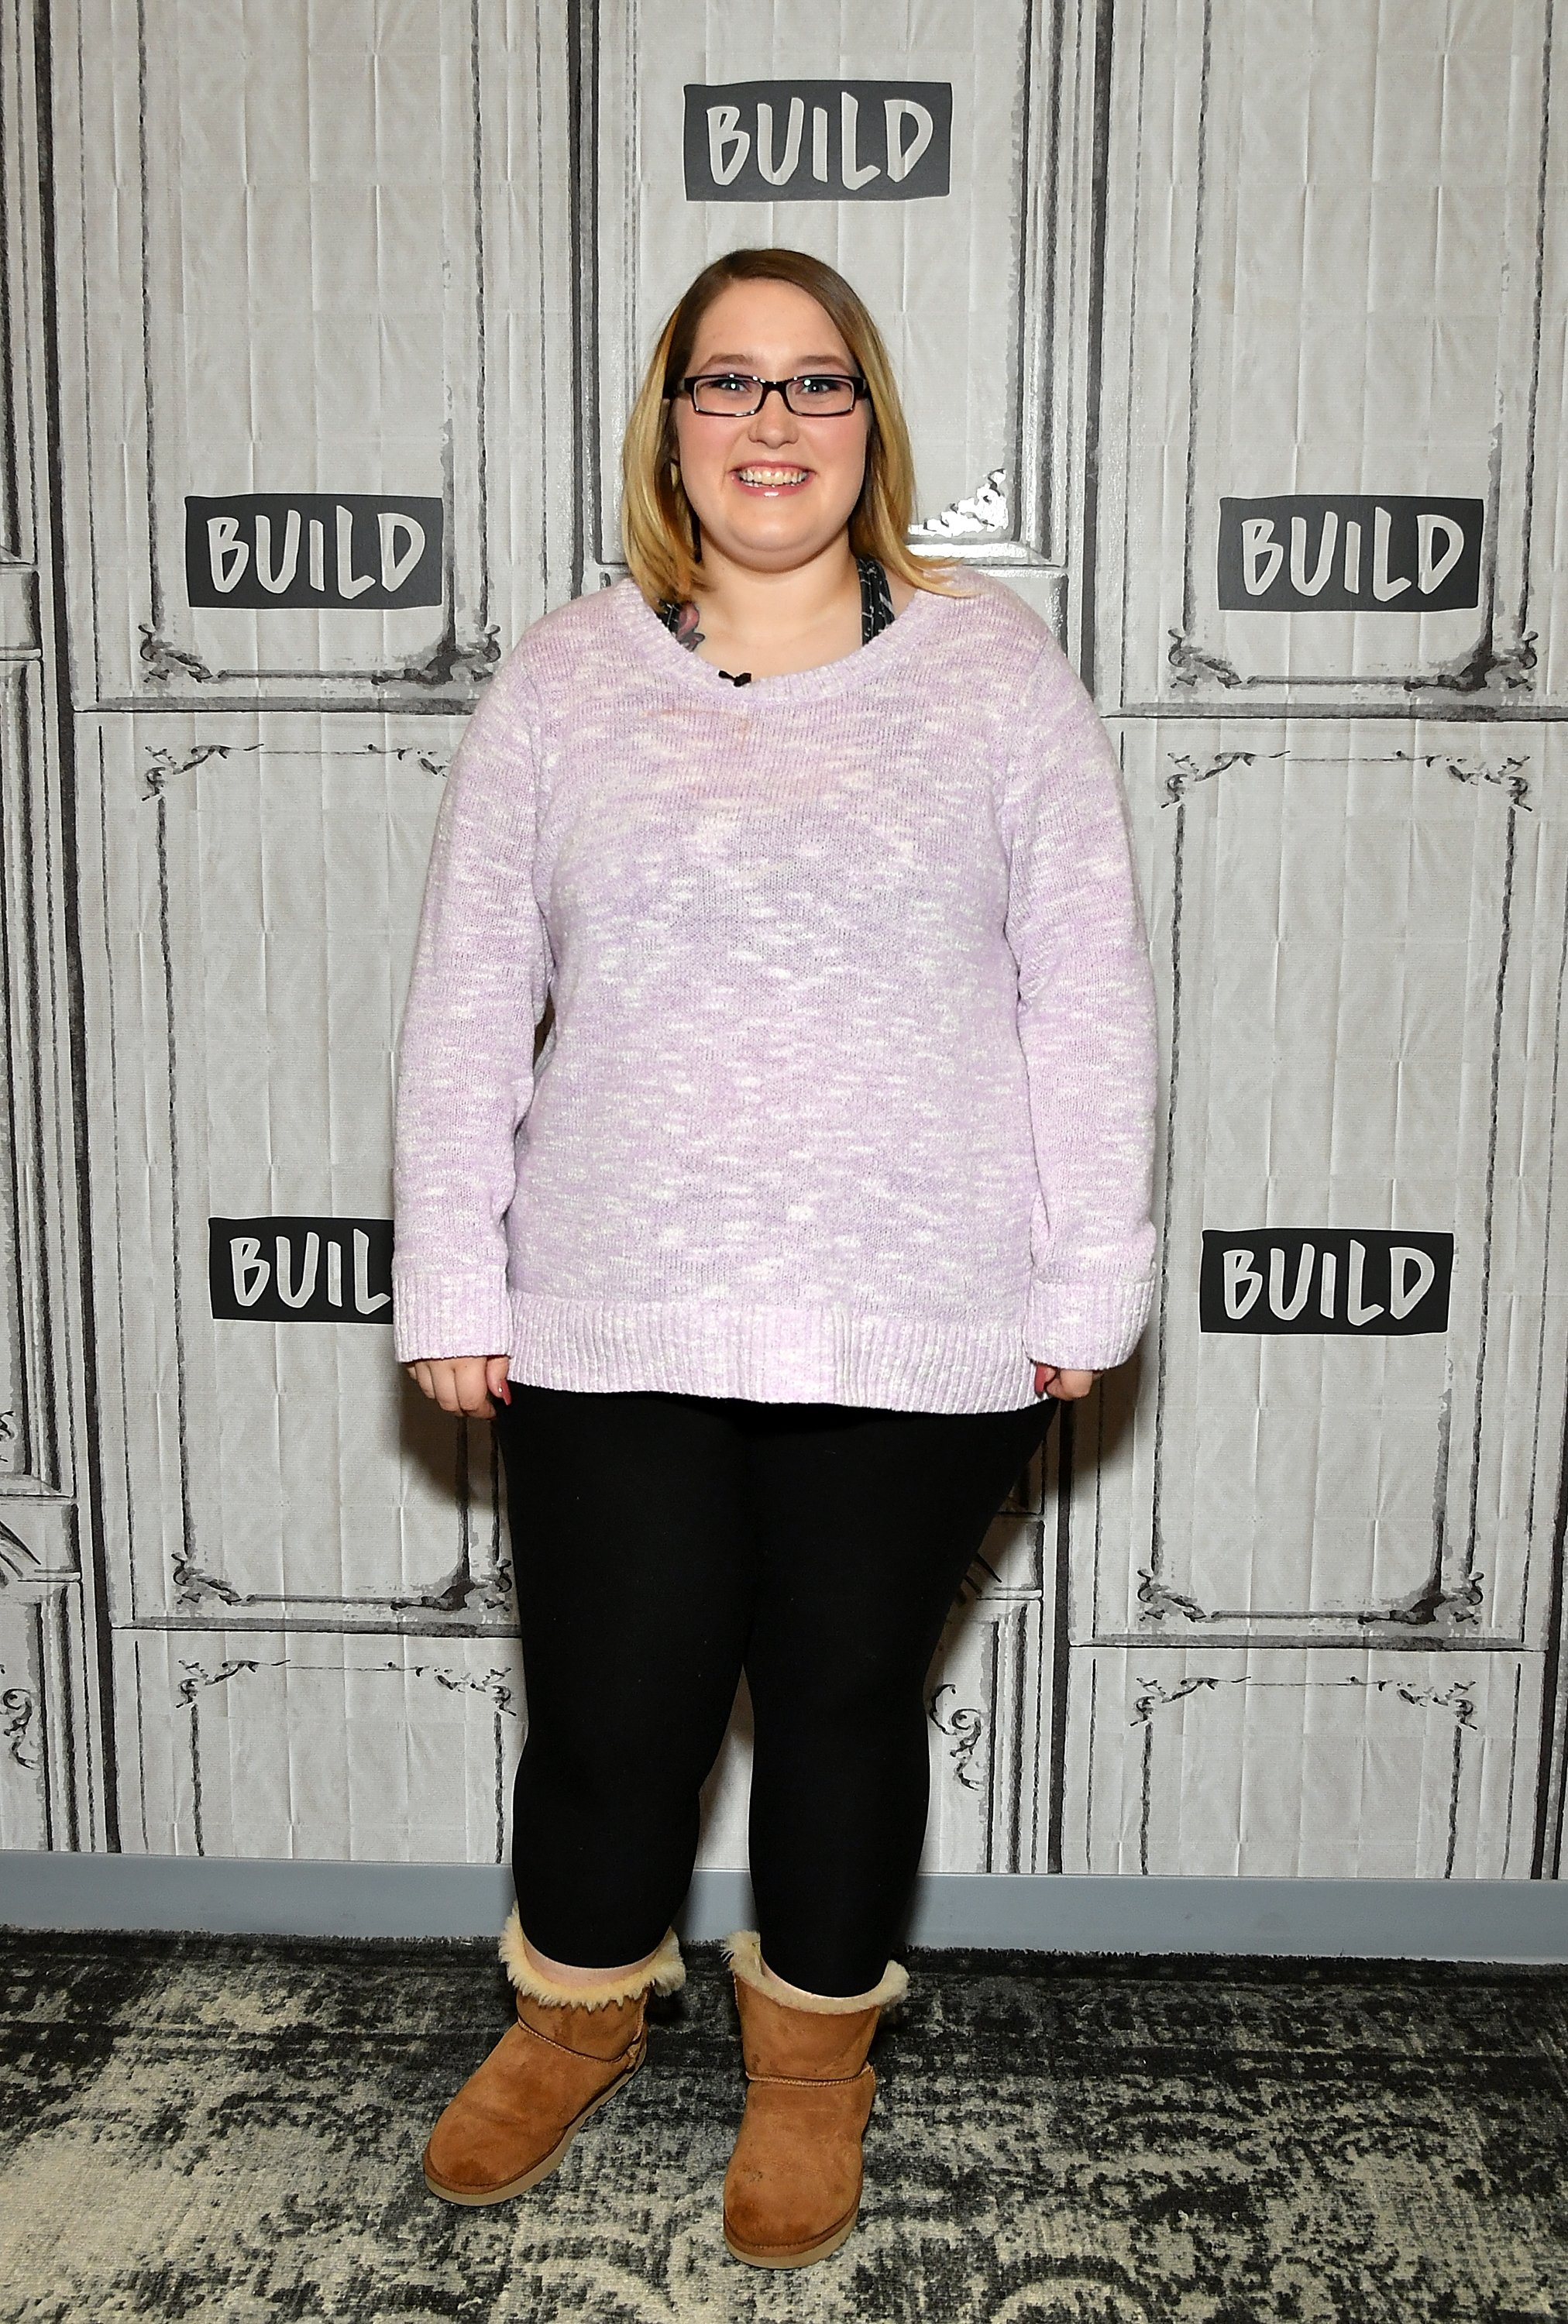 """Lauryn Shannon looking happy at a """"Build Brunch"""" event in New York on March 14, 2019. 